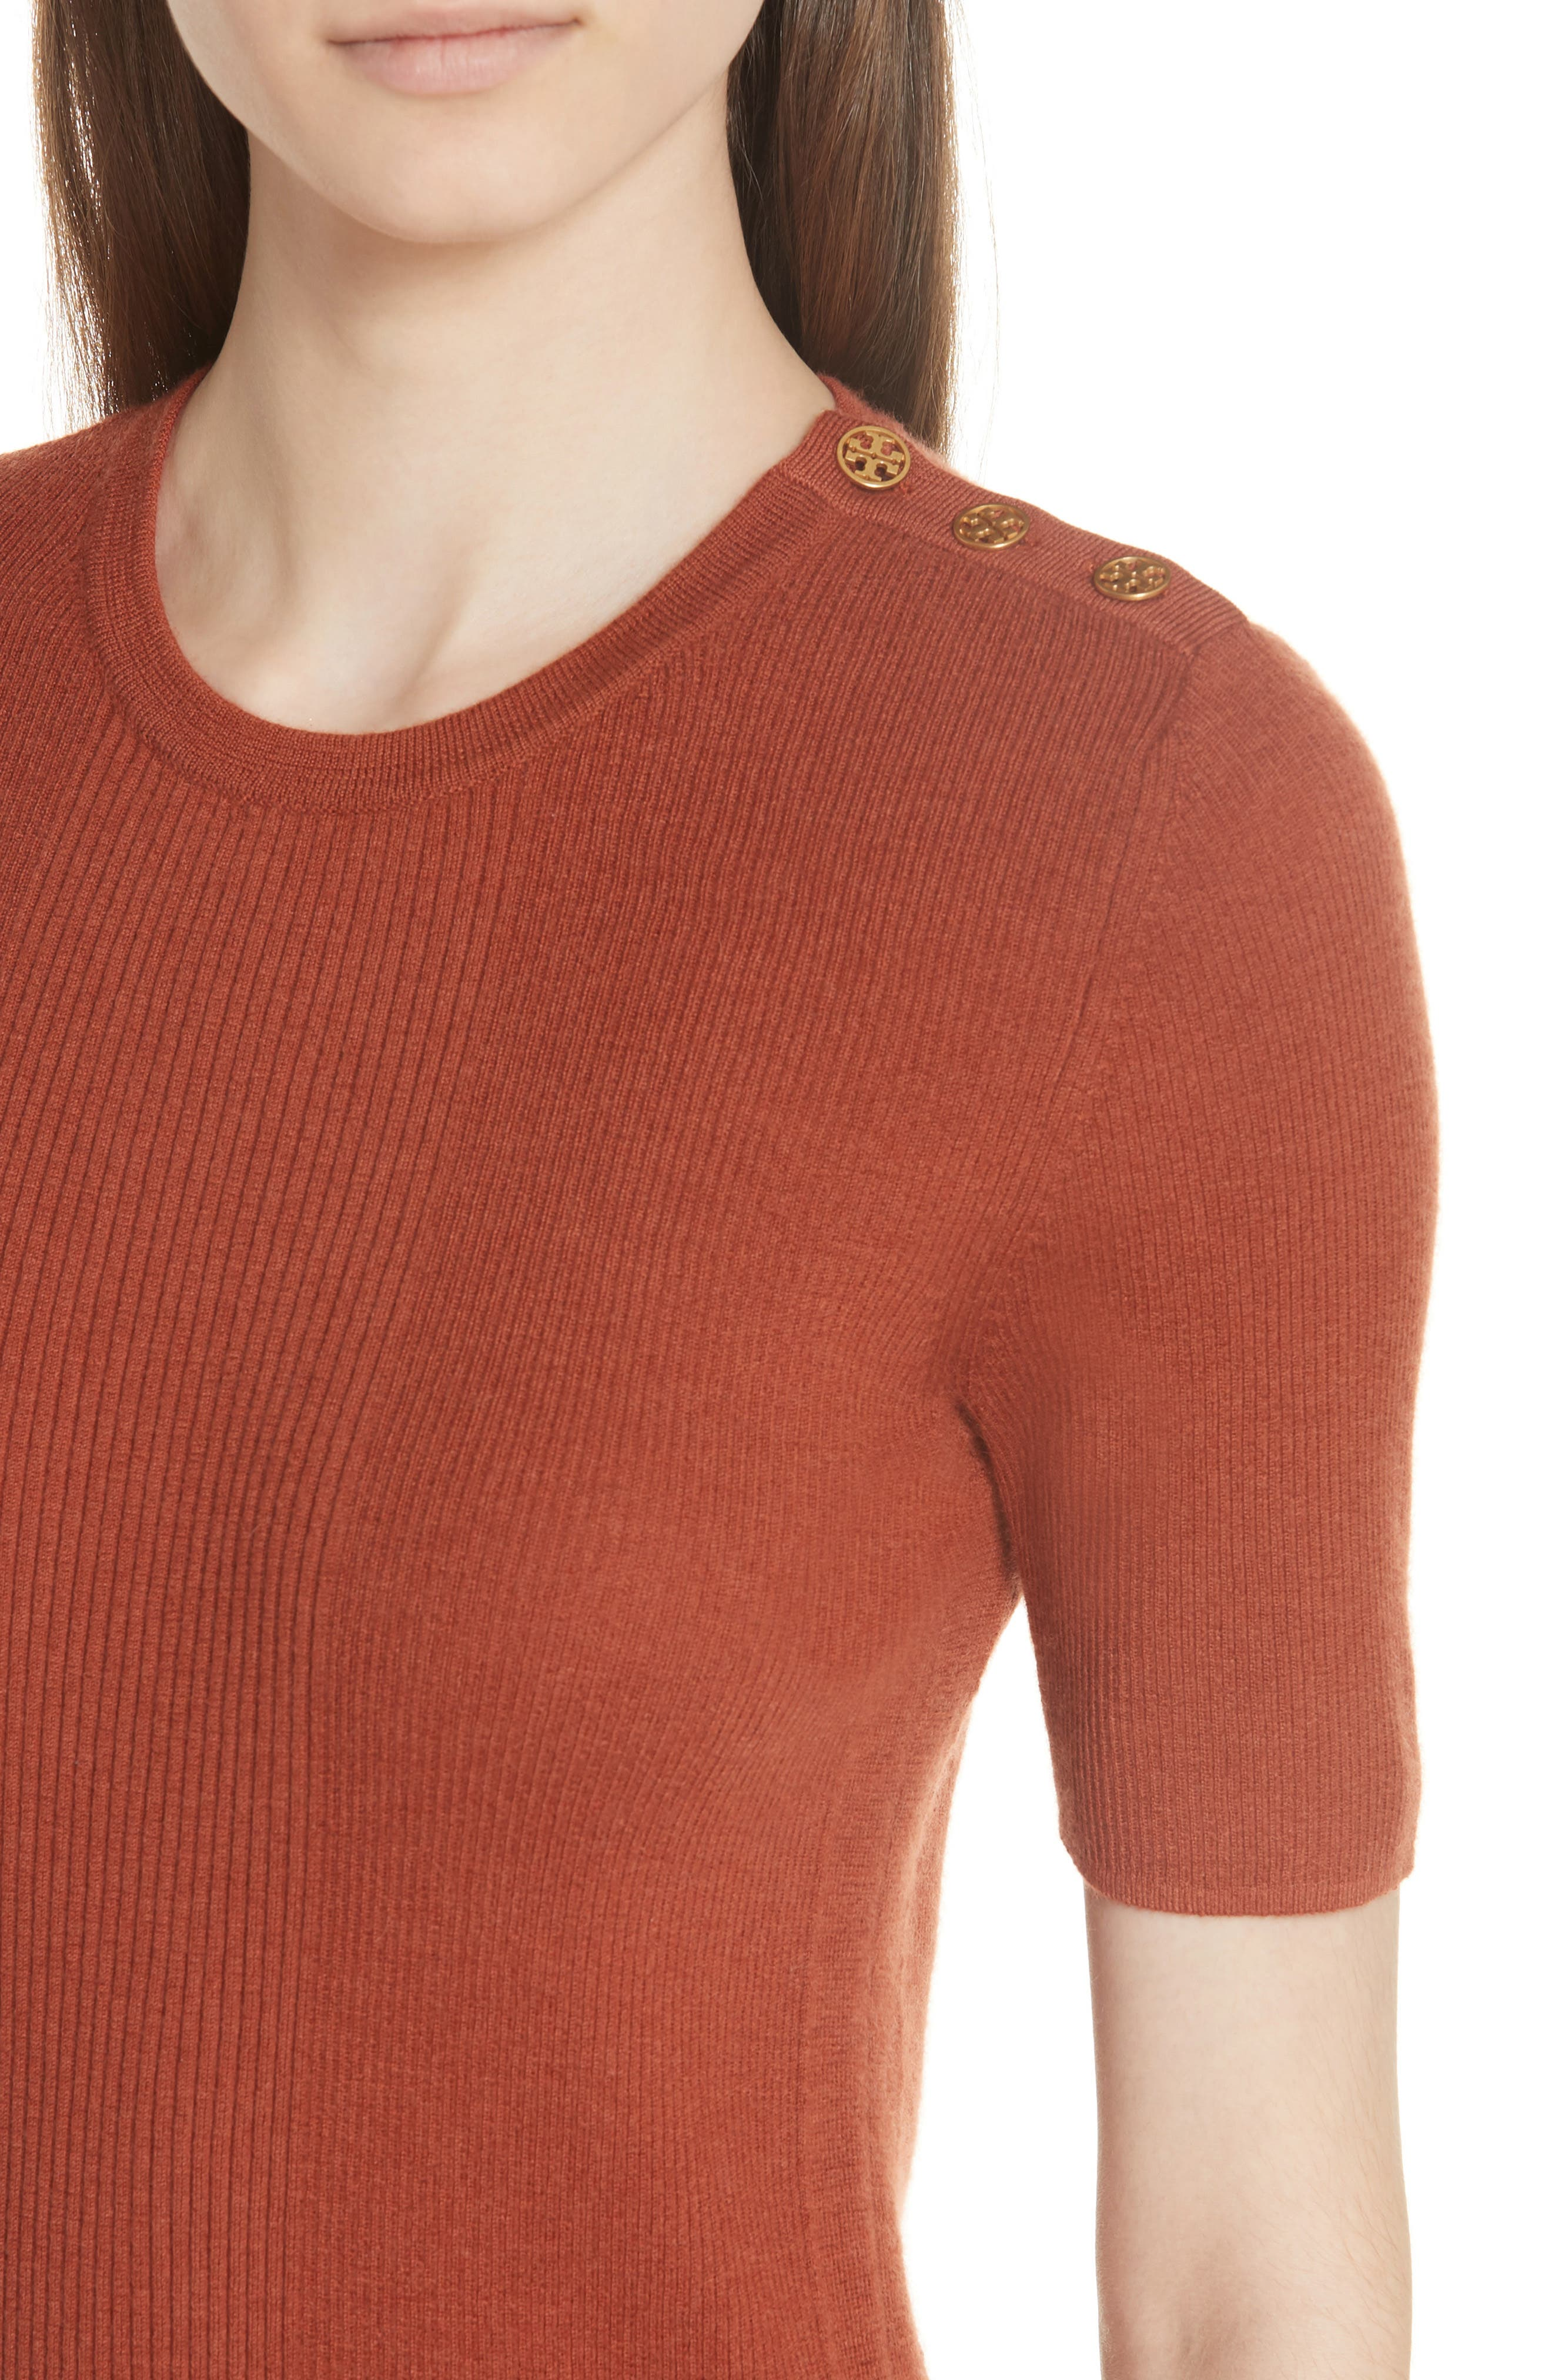 Taylor Ribbed Cashmere Sweater,                             Alternate thumbnail 4, color,                             DESERT SPICE